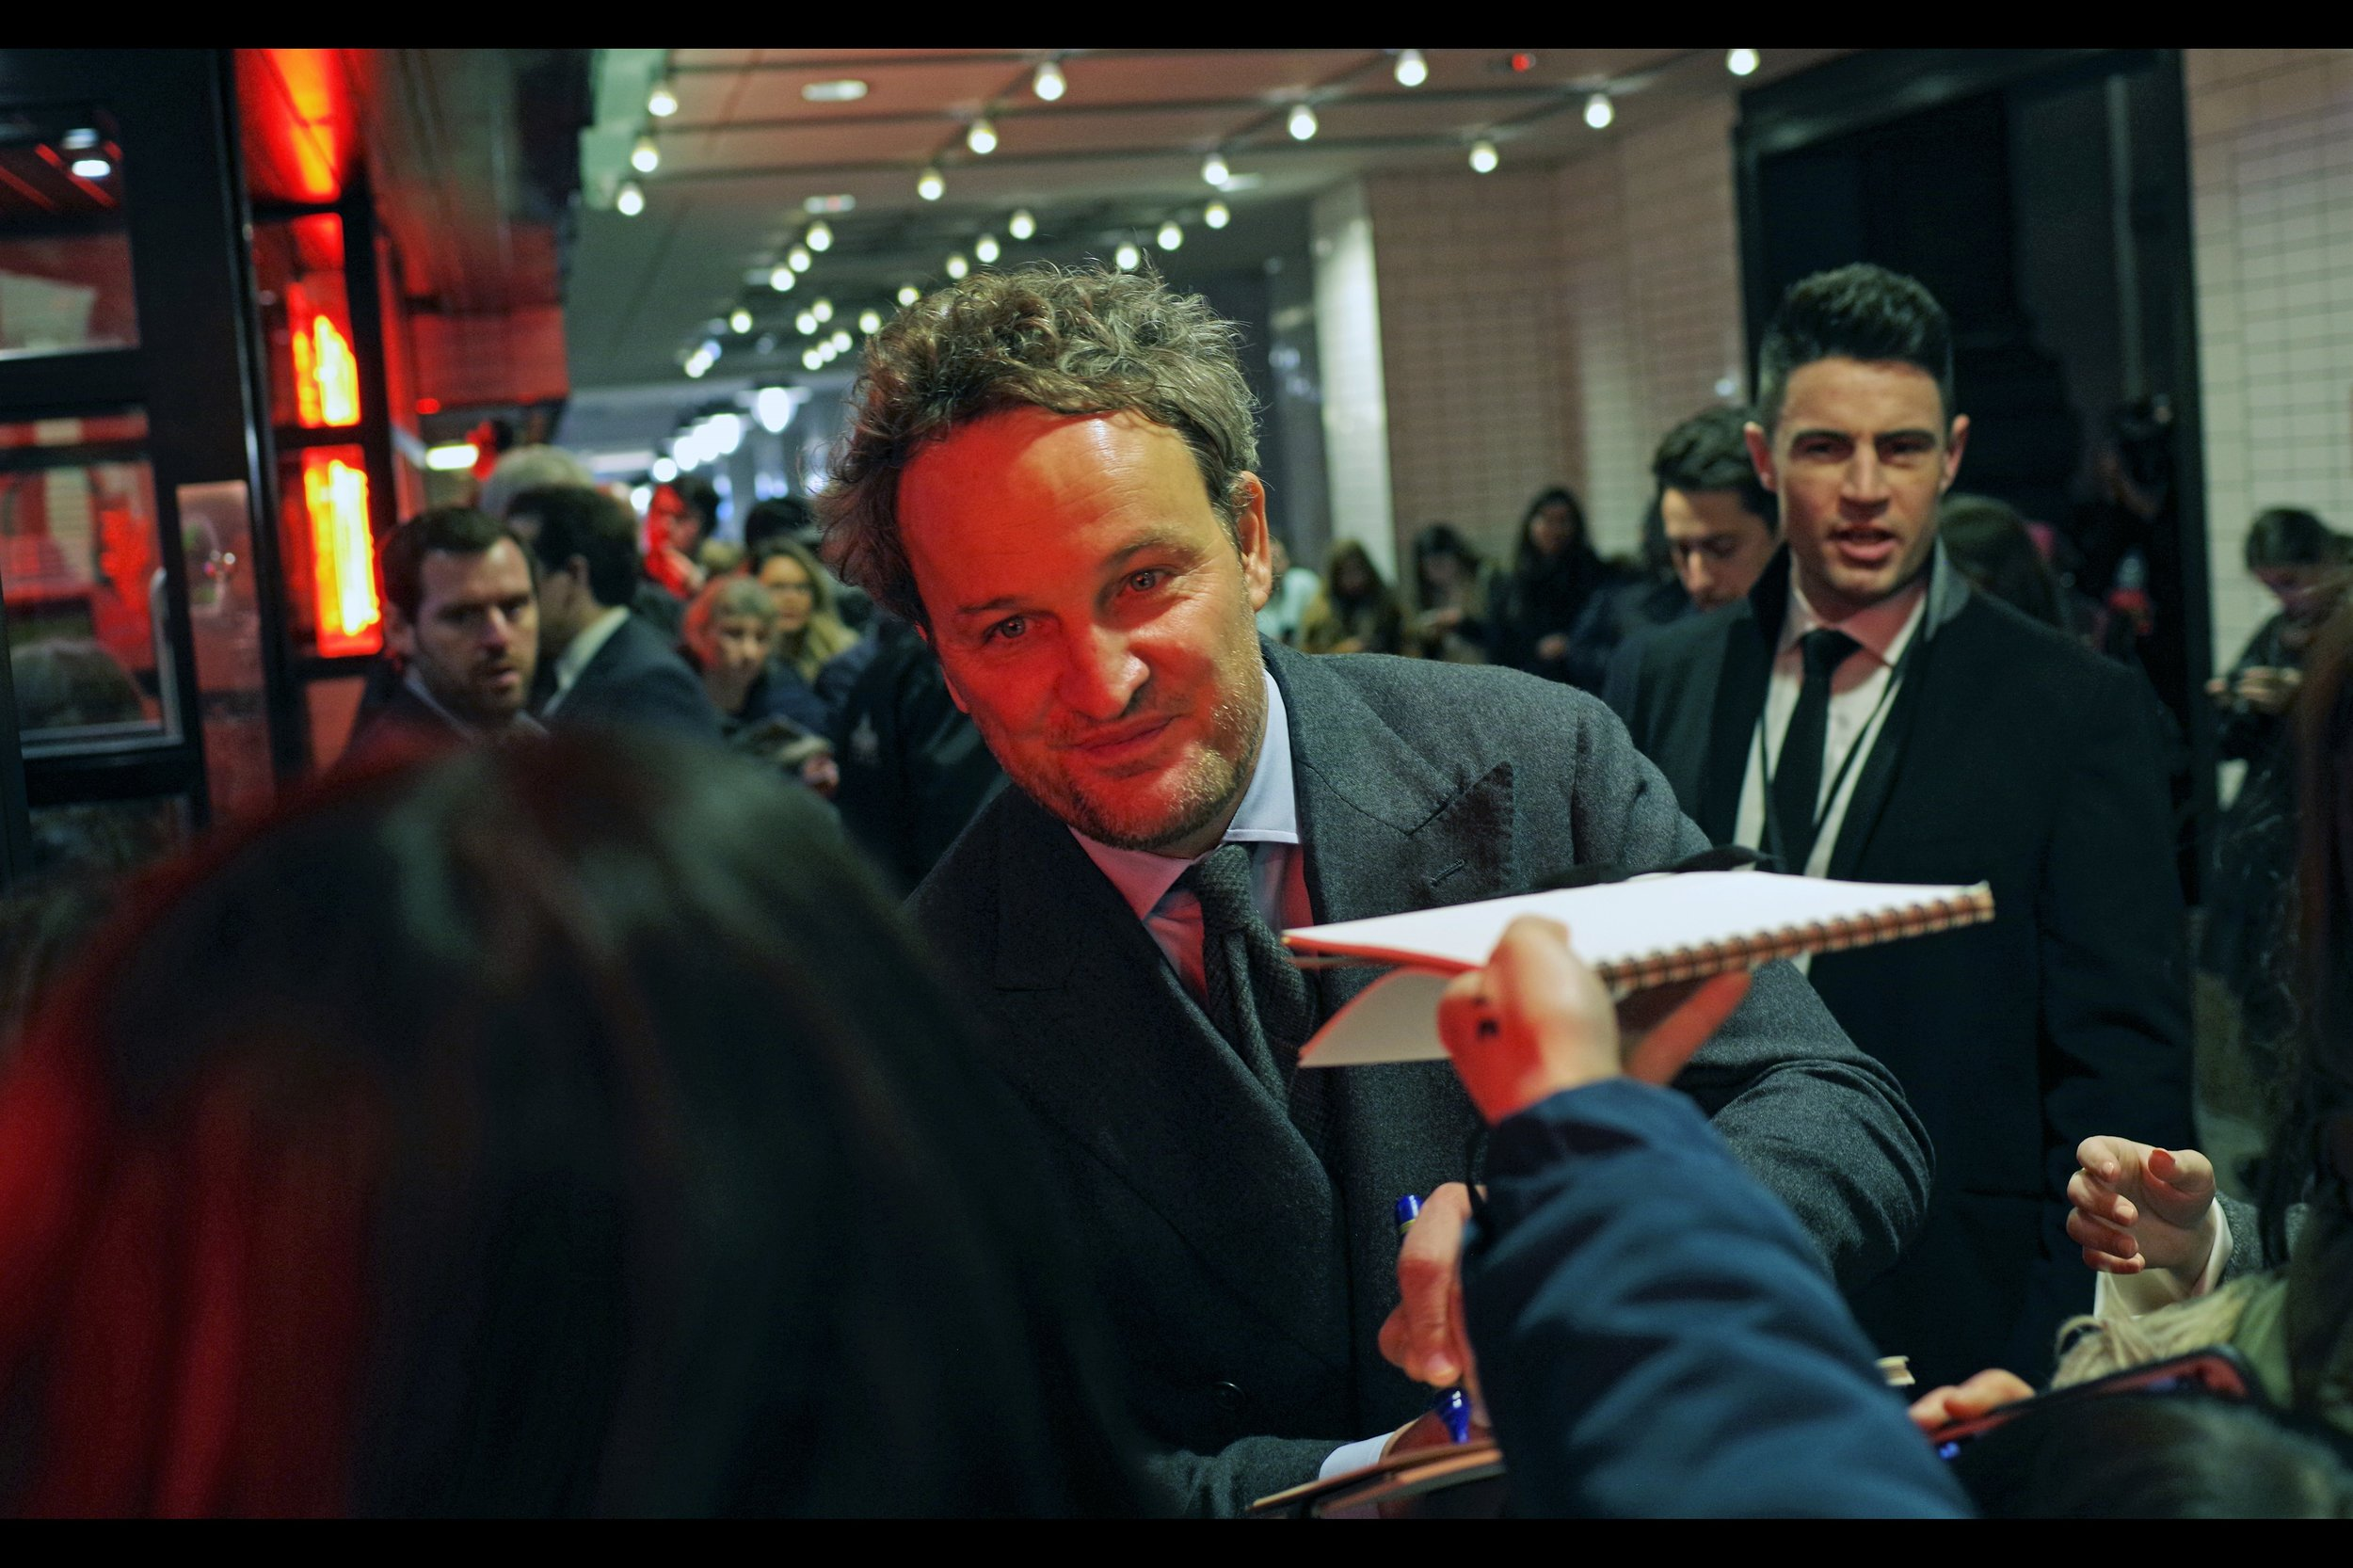 """""""Wouldn't you rather I stare dreamily into your eyes than sign a lined notepad you'll probably later write your shopping list on?""""  Jason Clarke, meanwhile, is a gentleman of the highest order - signing and posing for selfies on both sides of the red carpet."""